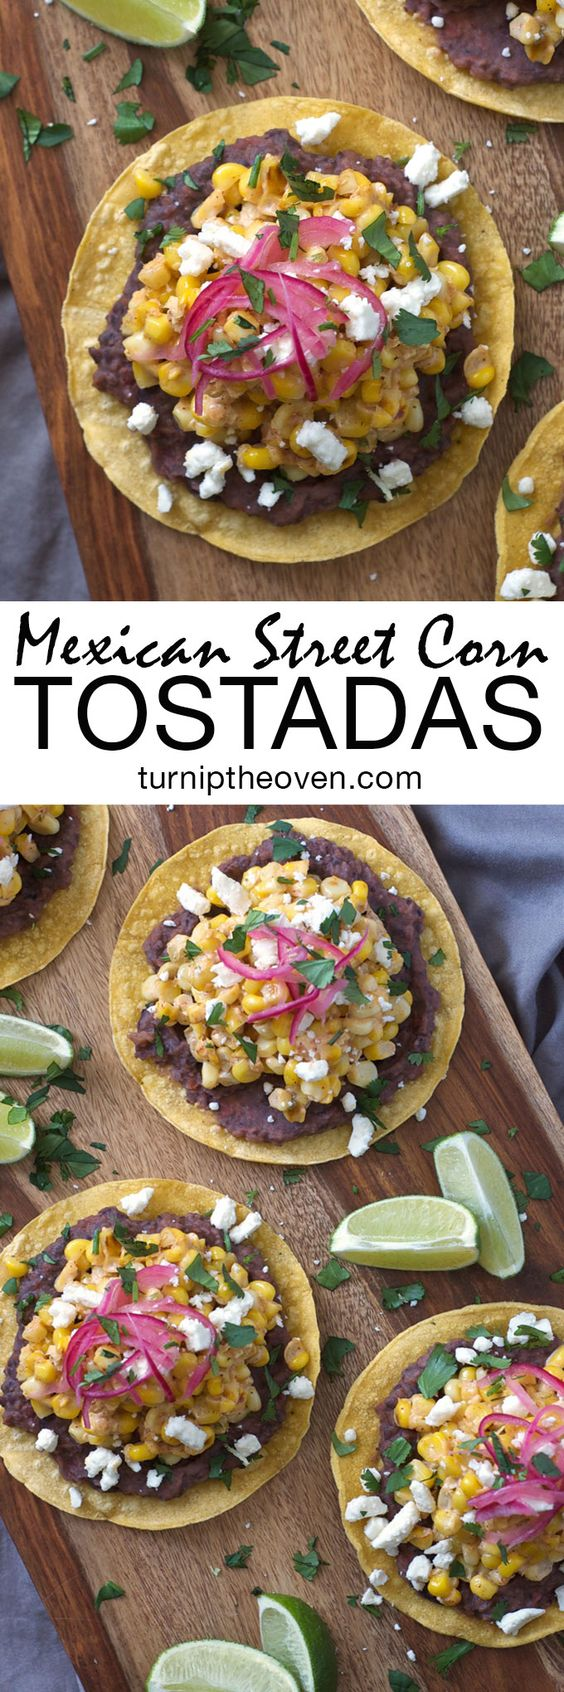 corn tostadas mexicans street spicy black beans beans sour cream ...